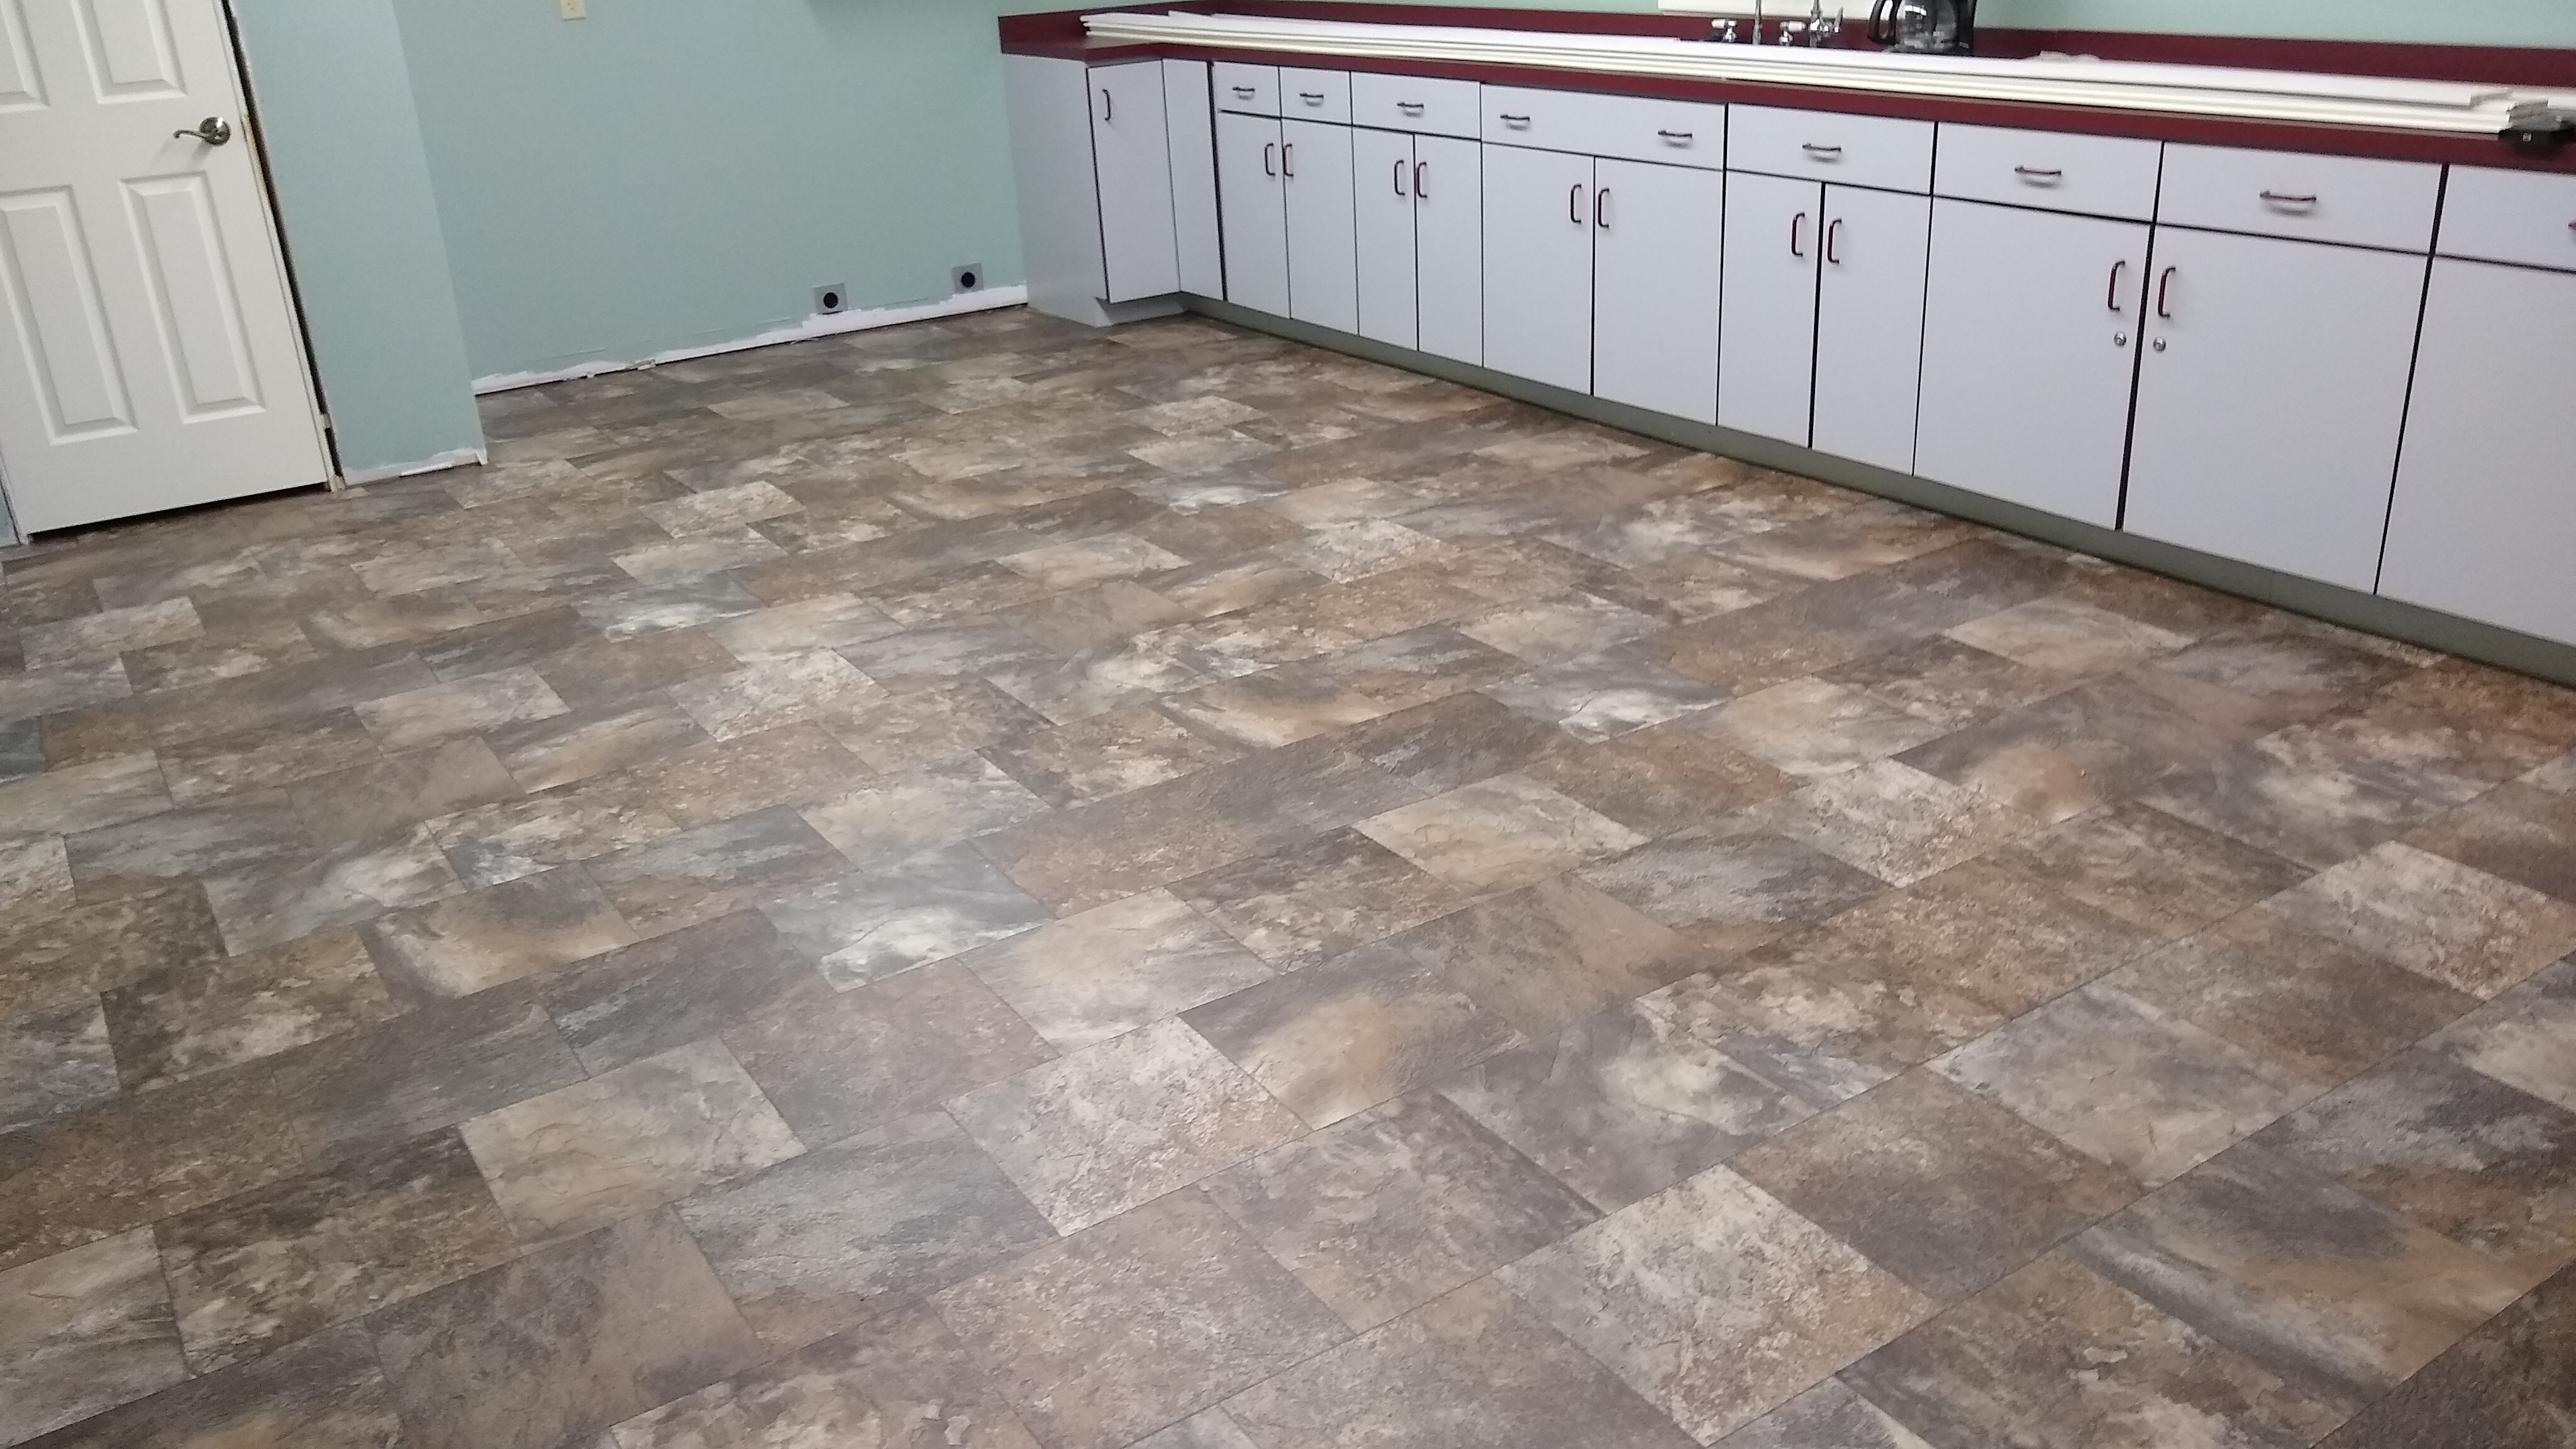 Church Kitchen Meets Its New Floor